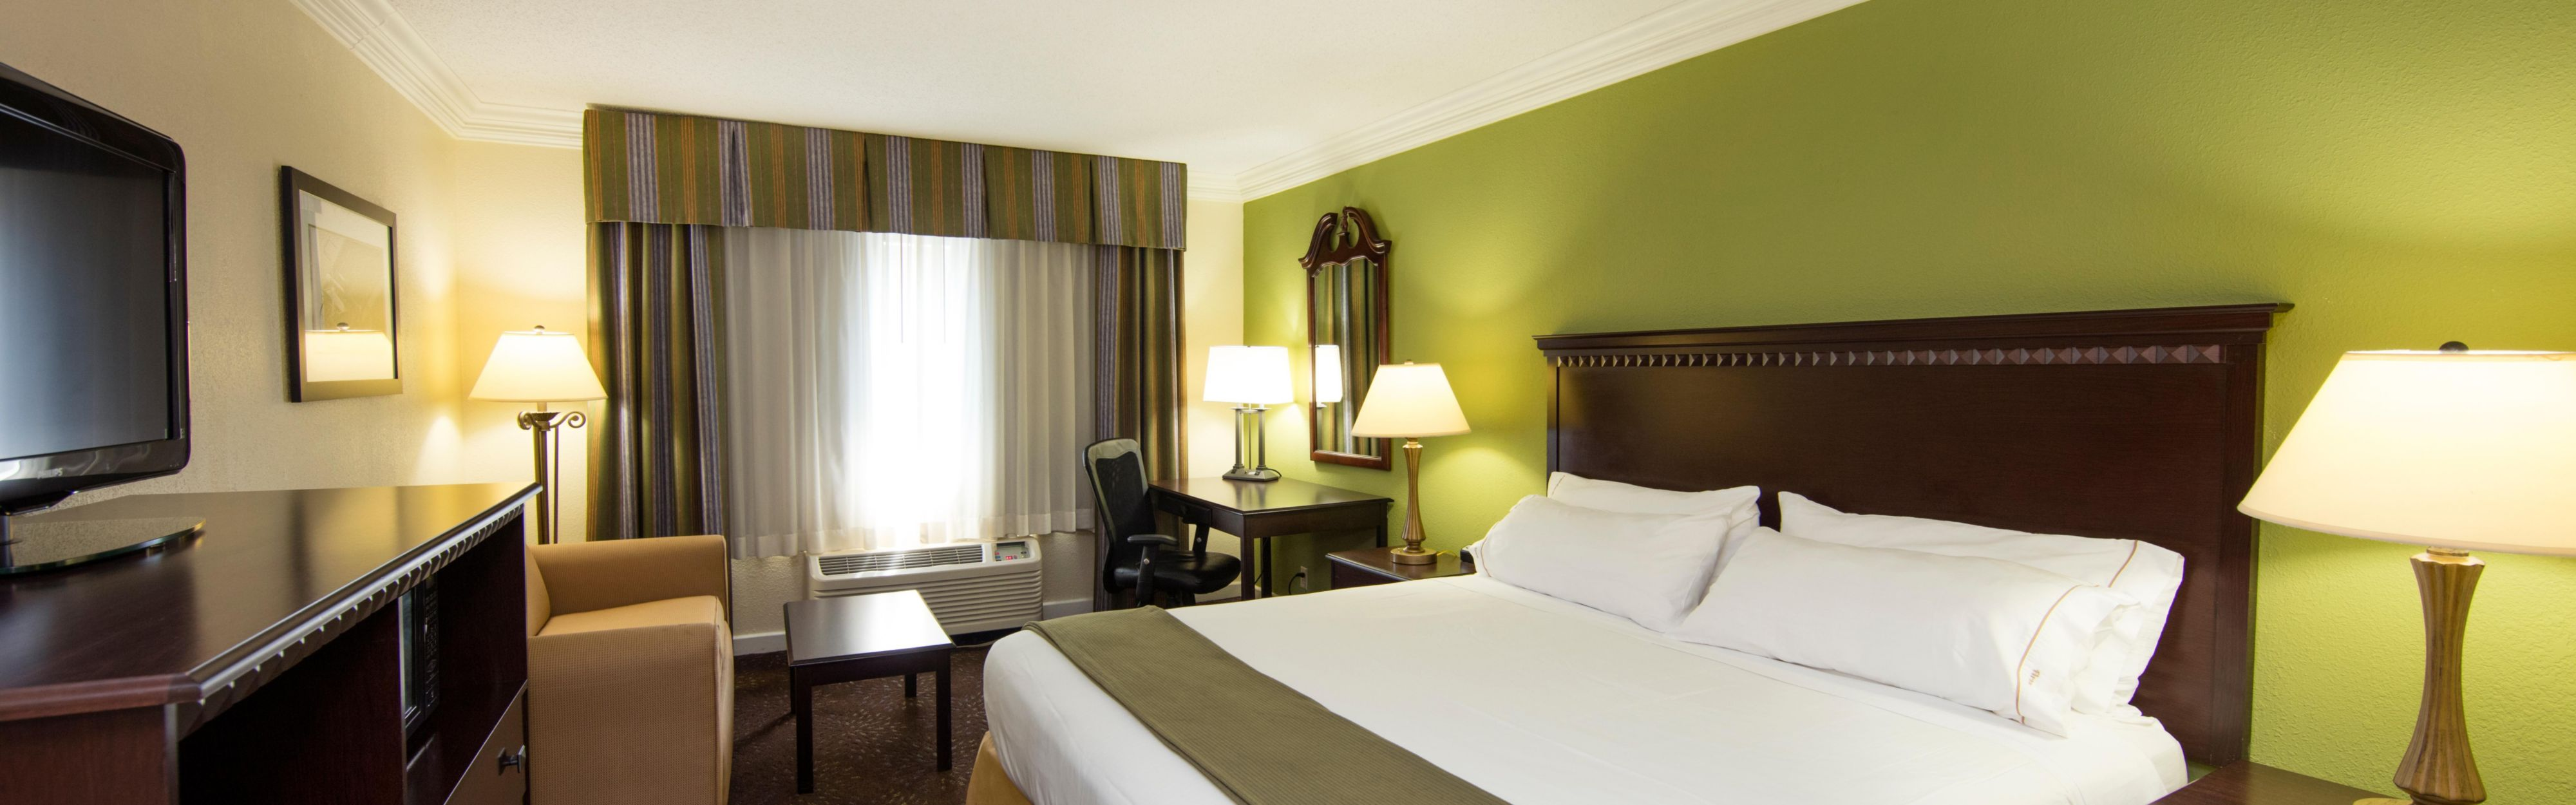 Hotels Motels In Athens Georgia